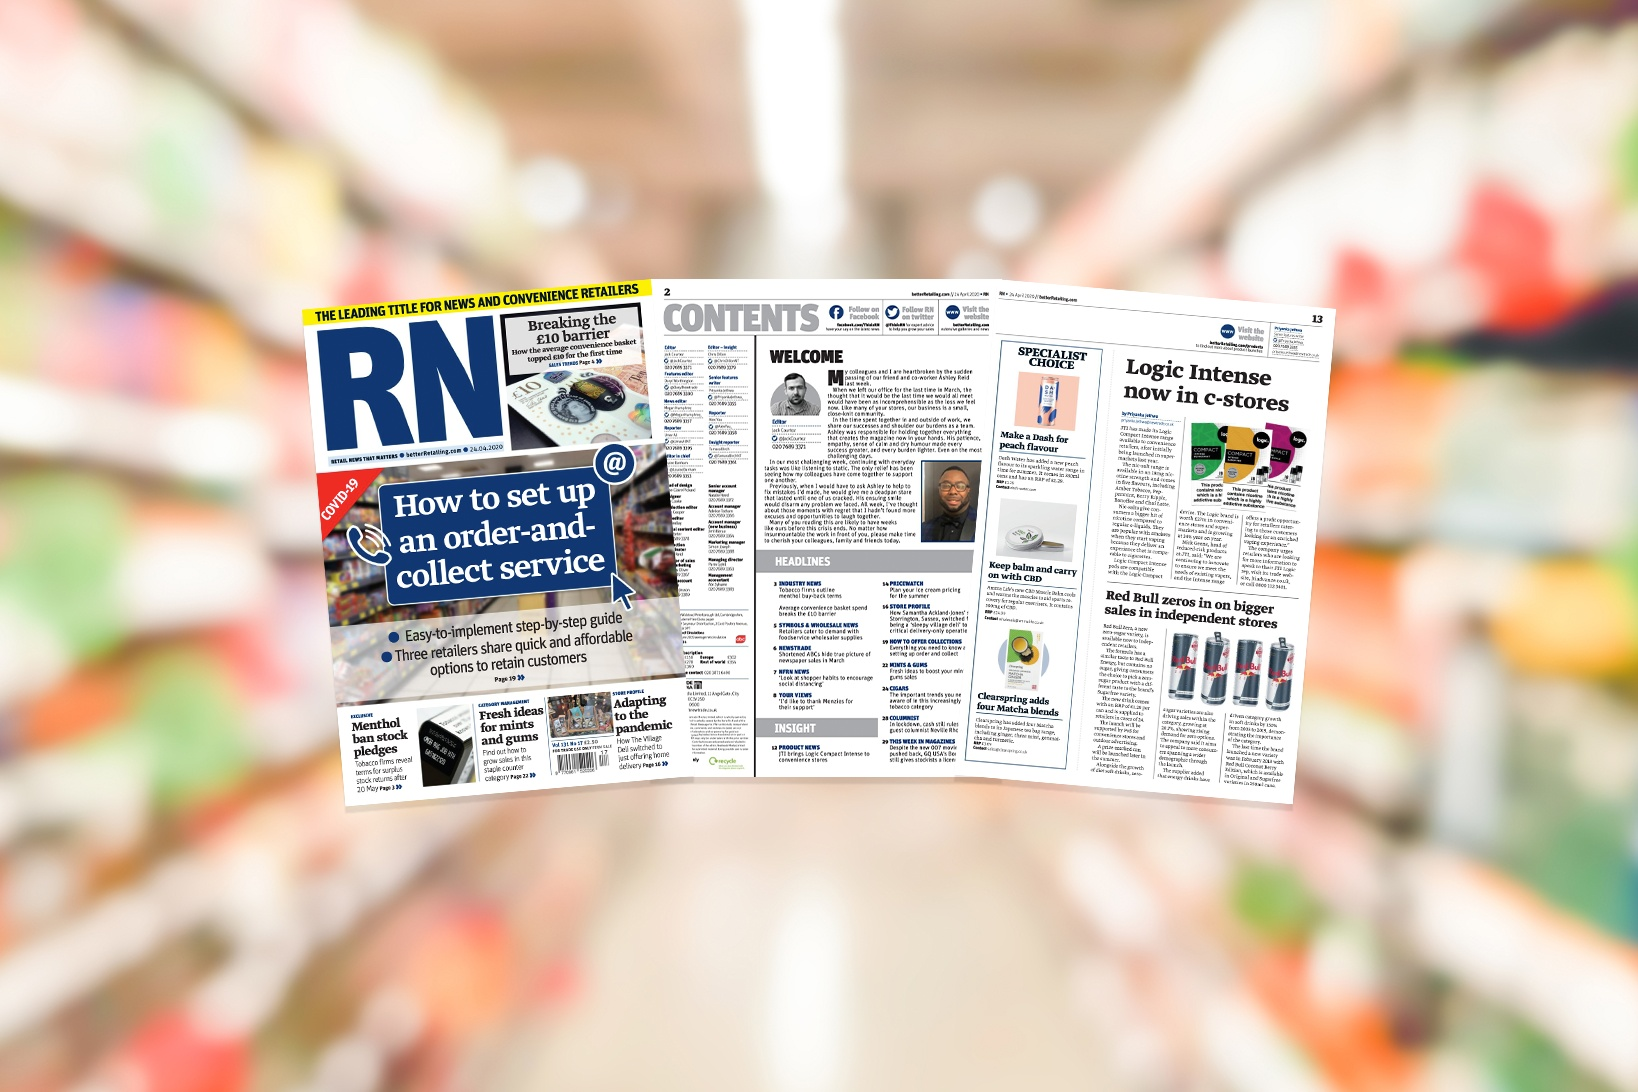 Retail news and insight